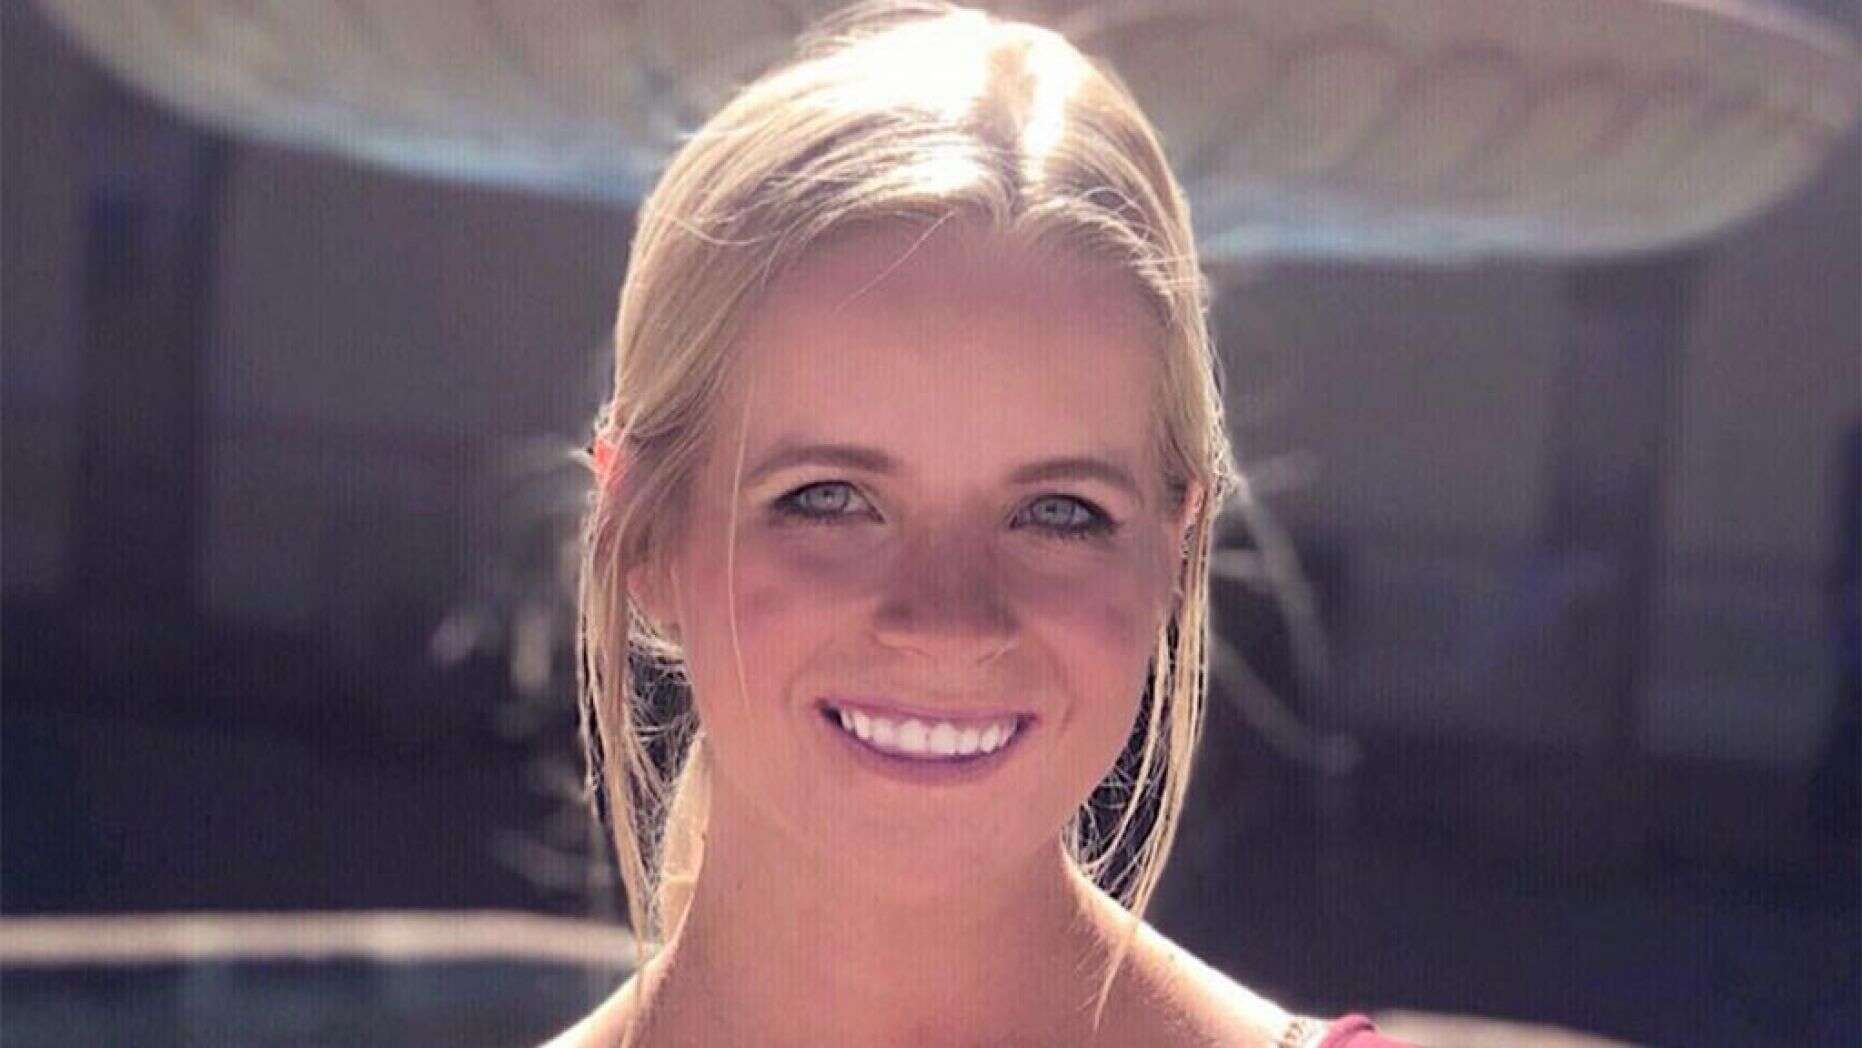 Ole Miss student Ally Kostial was shot 8 times, arrest made in connection to killing